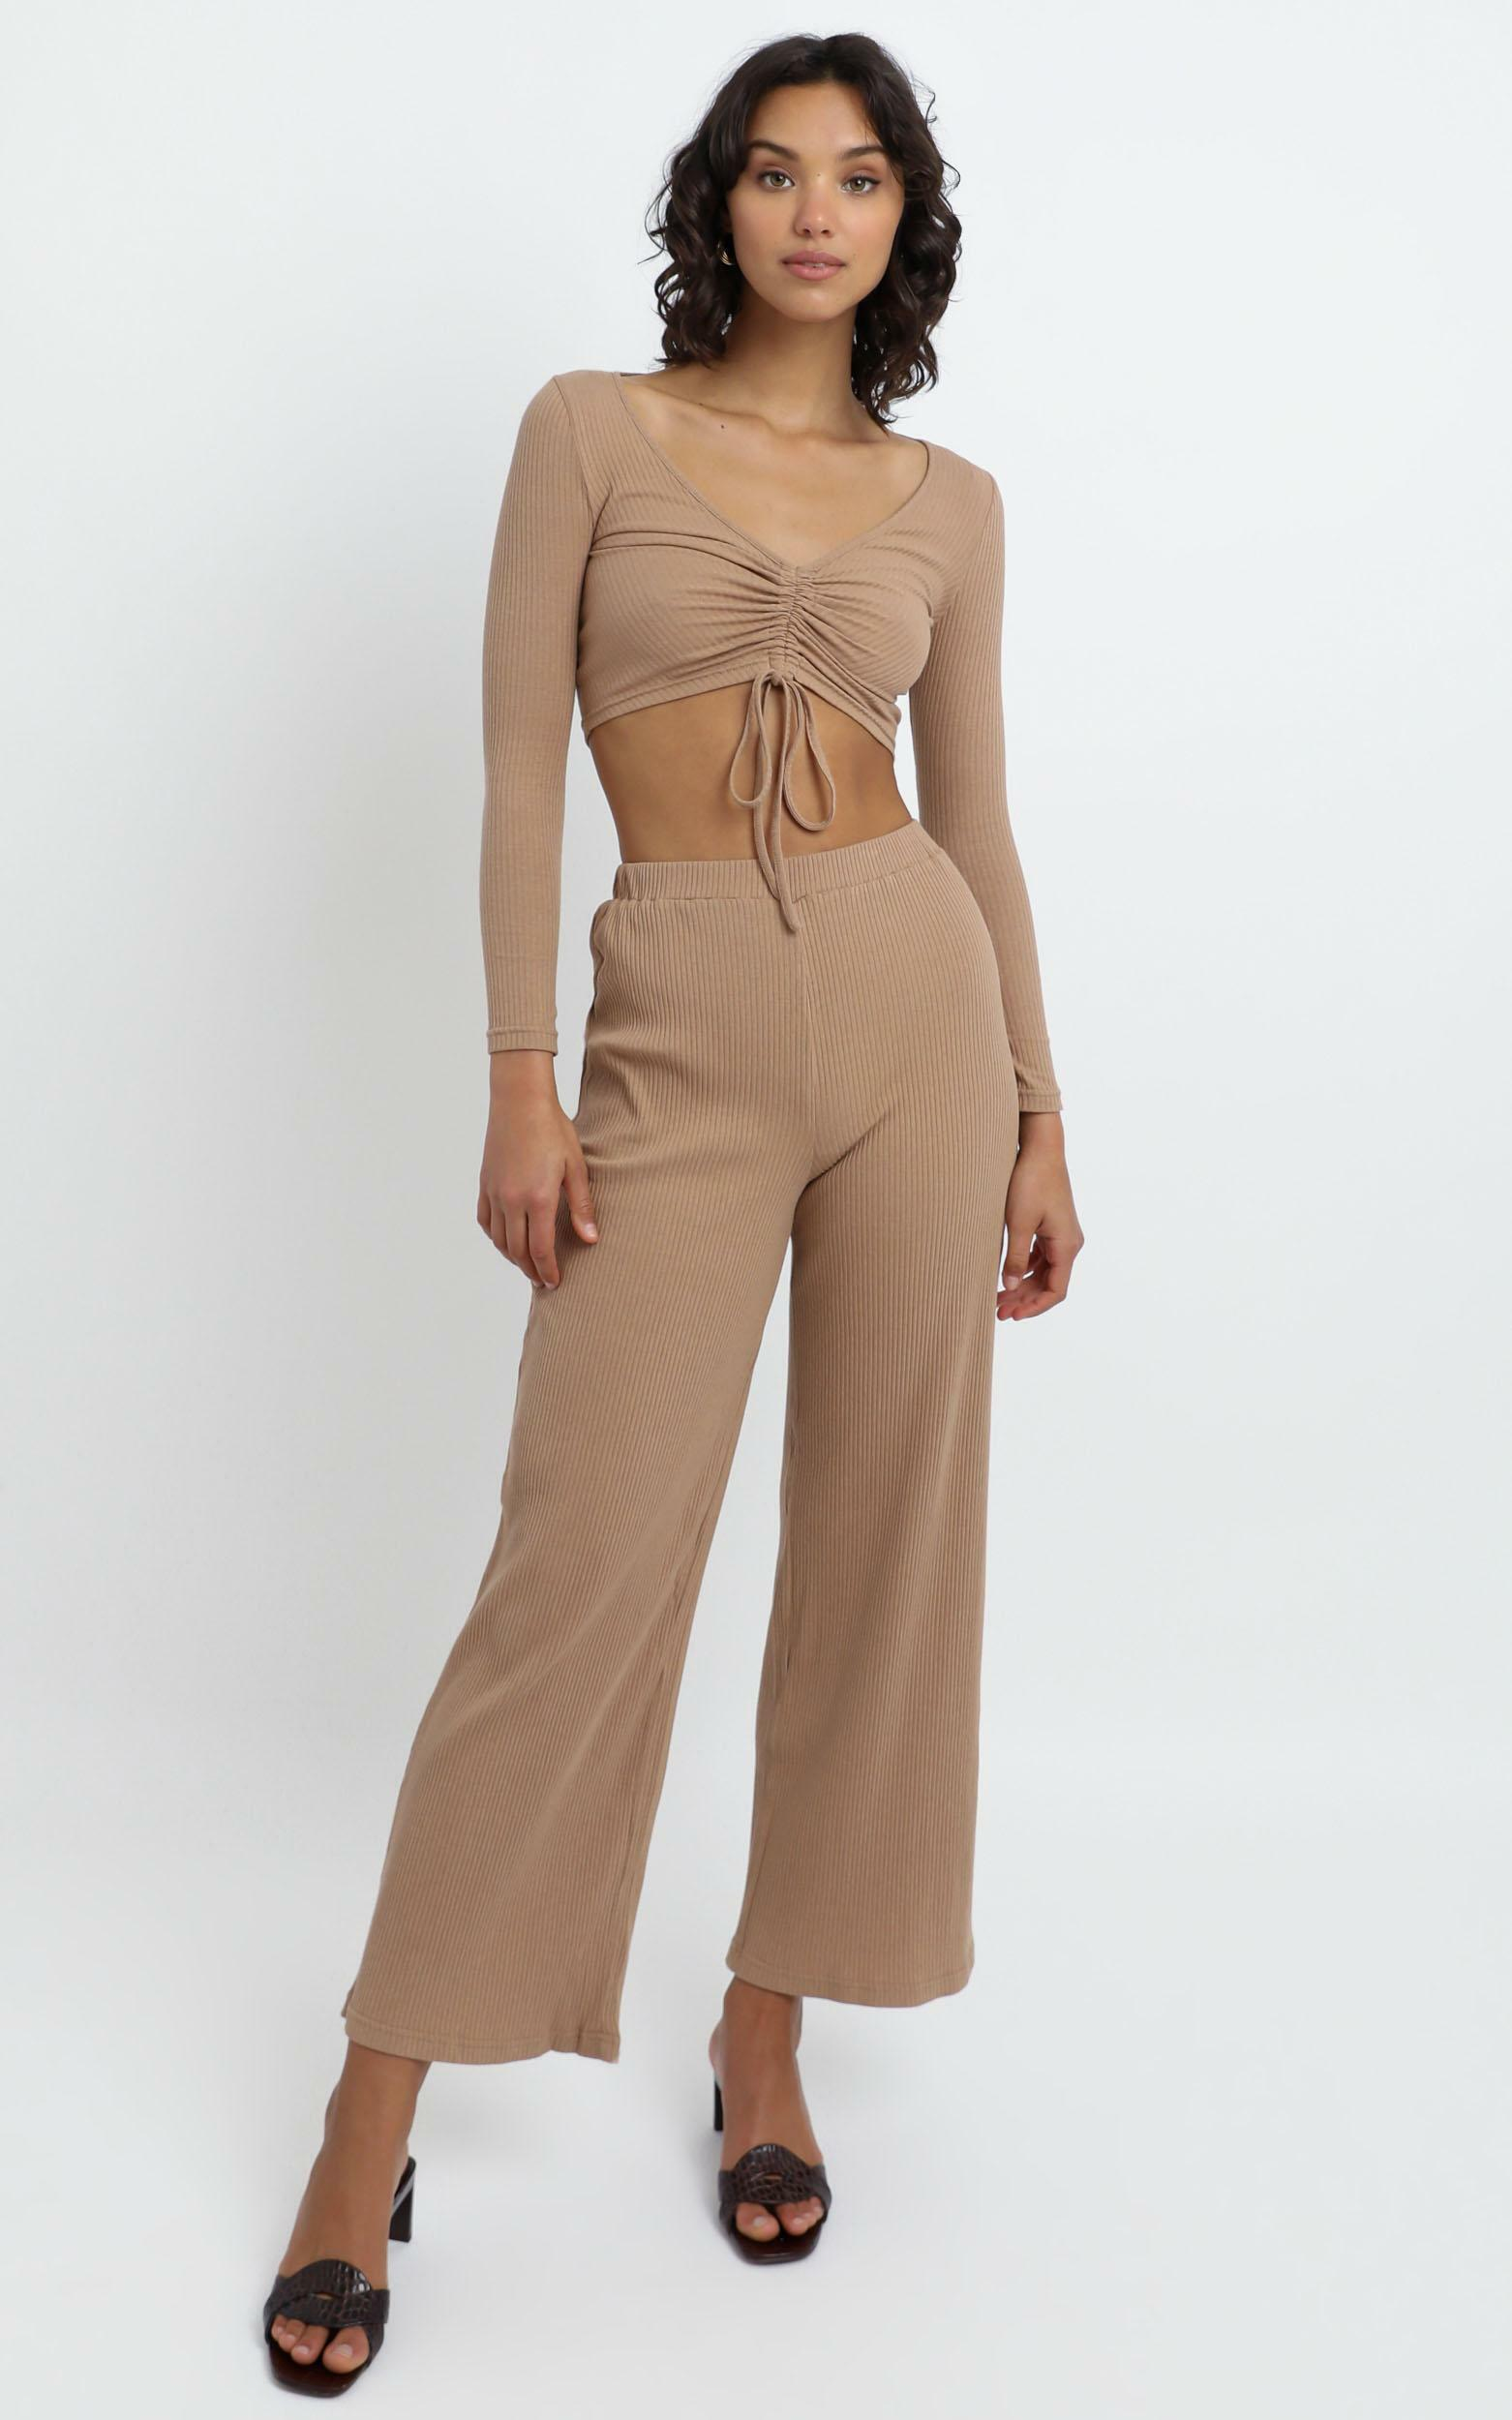 Roma Two Piece Set in Tan - 6 (XS), Tan, hi-res image number null